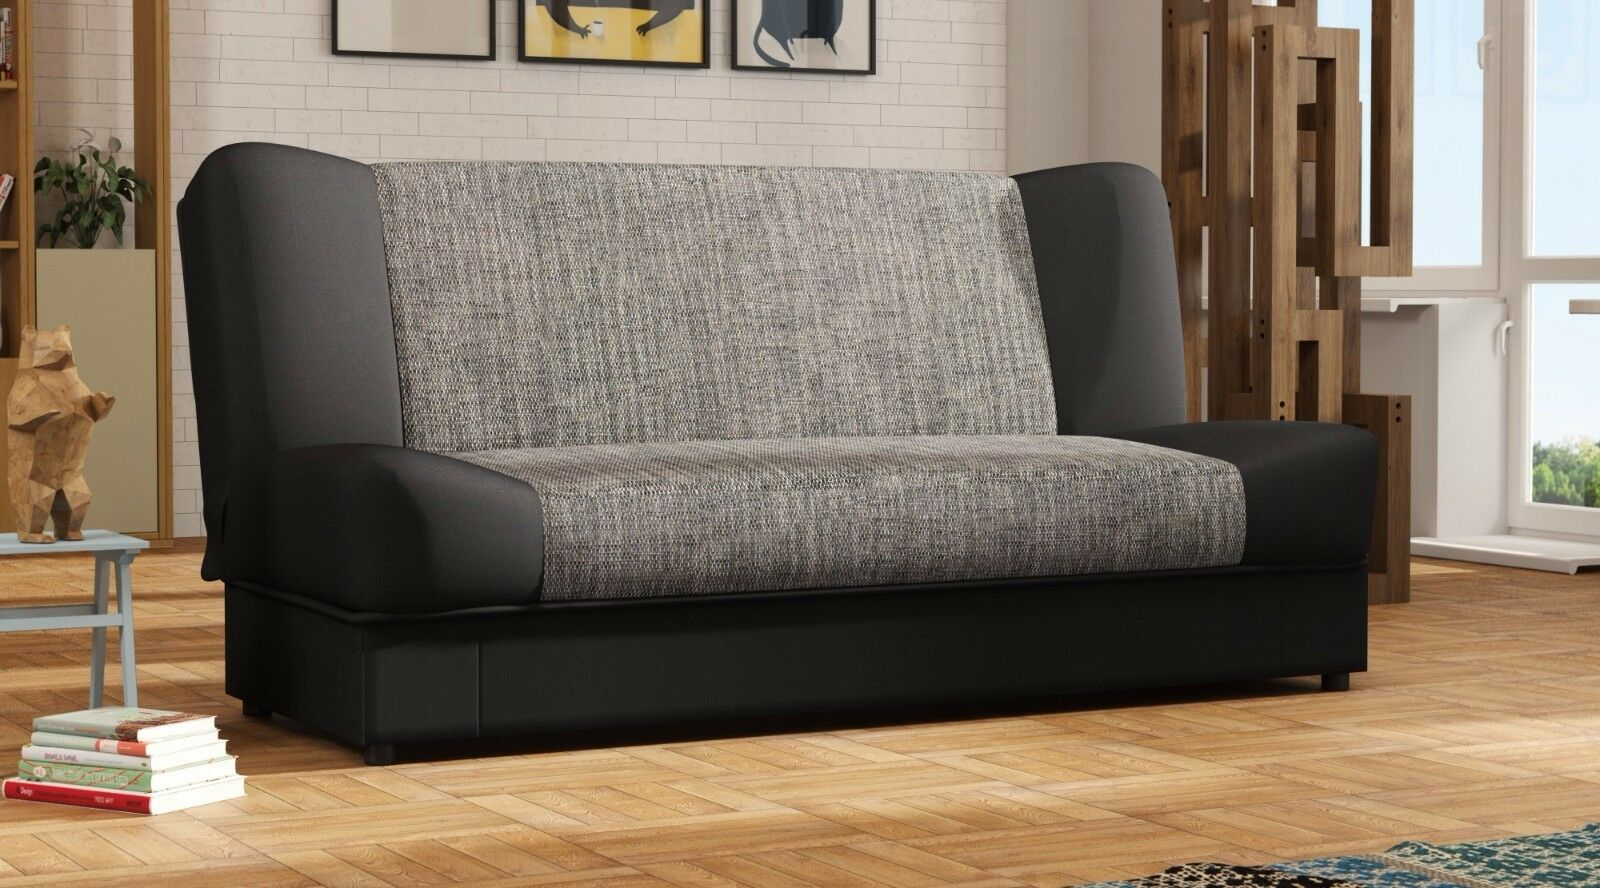 cansas sofa couch 3 sitzer webstoff schwarz stoff kunstleder weiss eur 219 00 picclick de. Black Bedroom Furniture Sets. Home Design Ideas